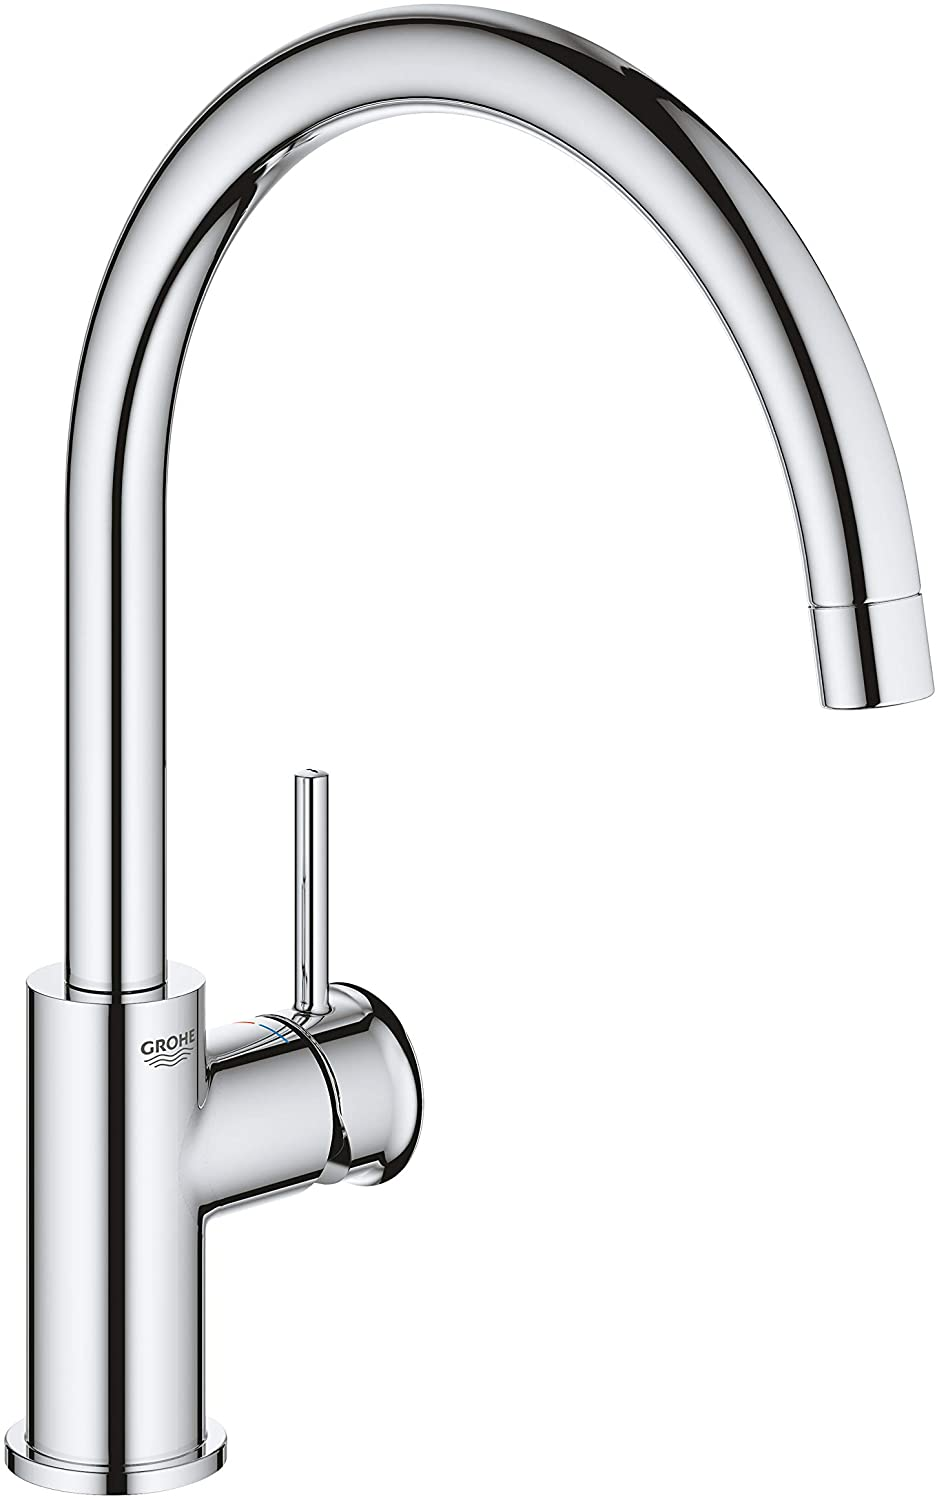 GROHE Mitigeur /évier 31535001 Import Allemagne